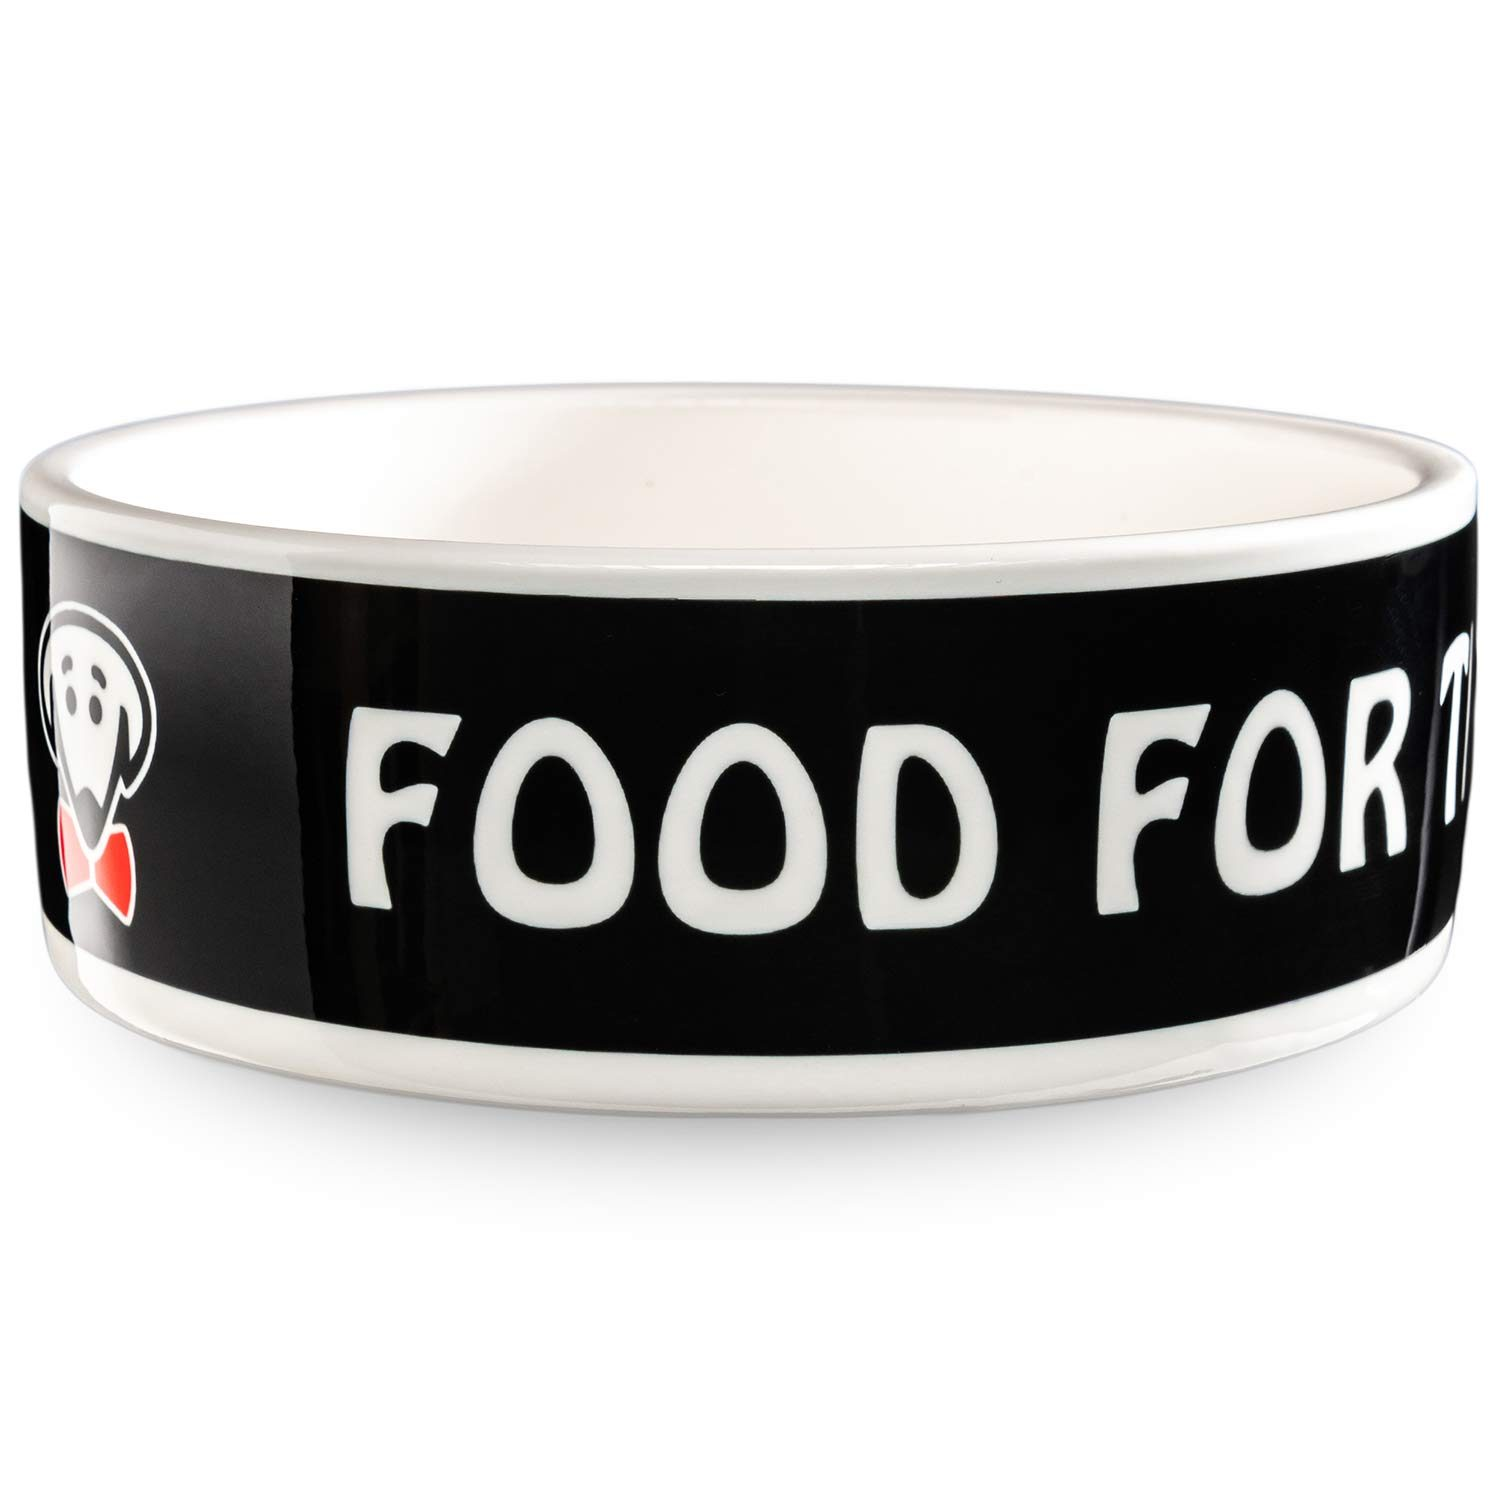 Food for the Boss pet bowl in black by Beau Tyler